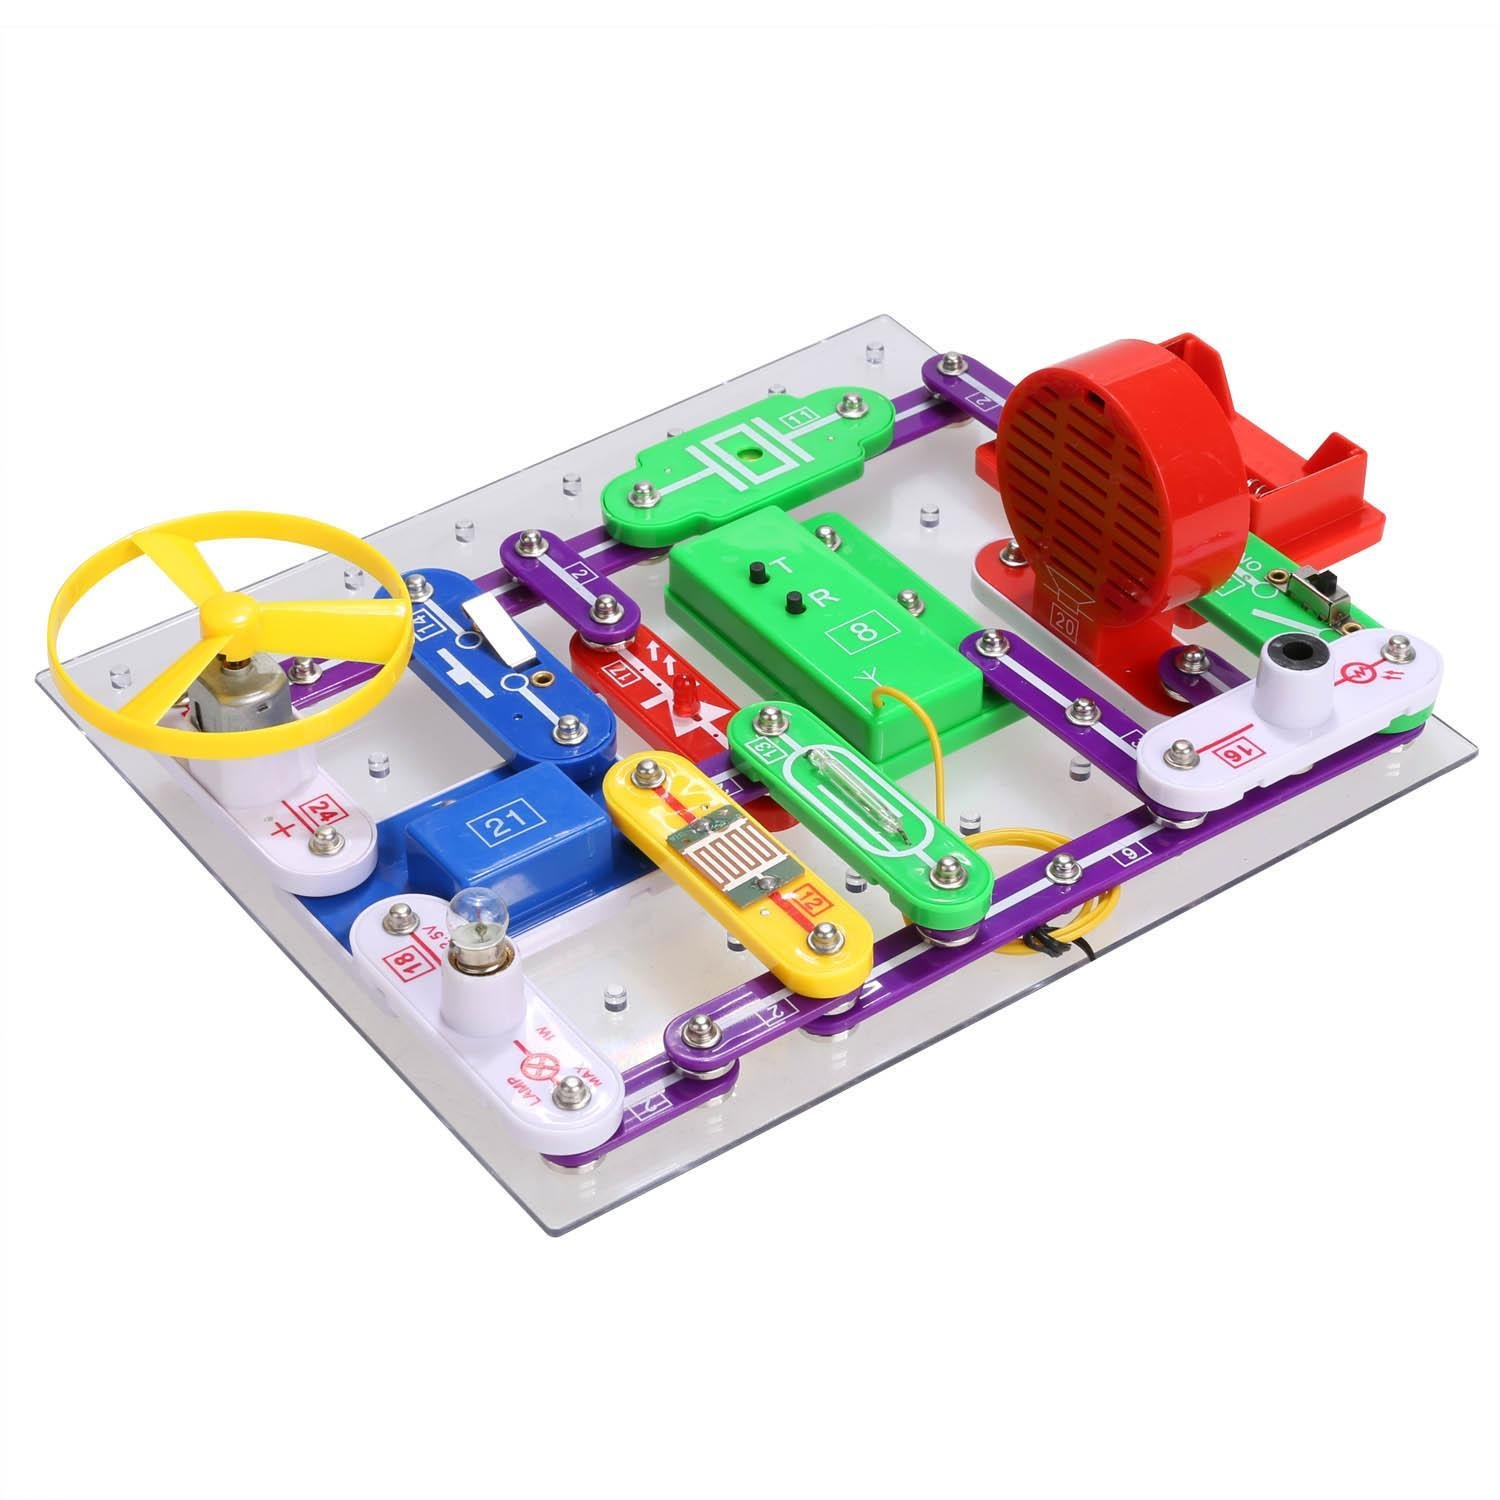 Garain Diy Circuits Smart Electronics Discovery Kit Snap Pro Sc500 Educational Science Toy For Childrenus Stock Toys Games